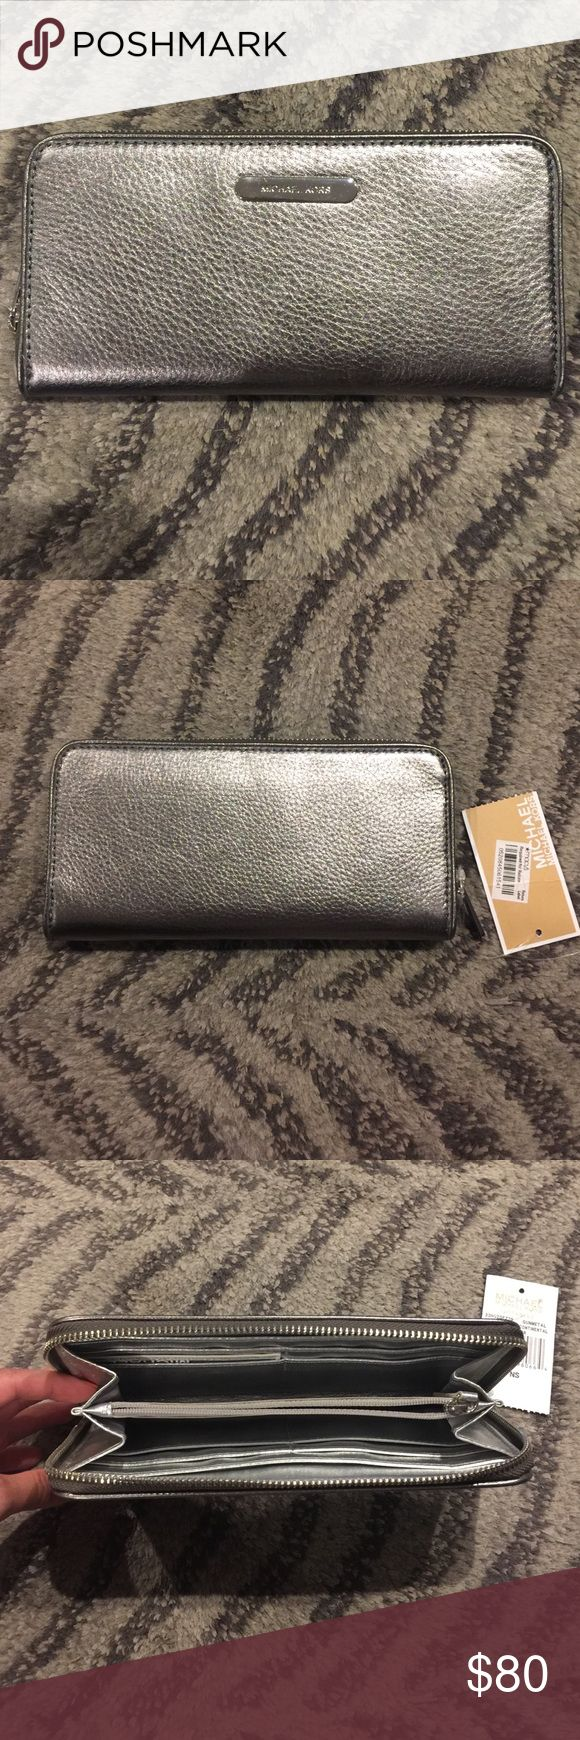 Gunmetal Leather Michael Kors Continental Wallet This genuine leather Michael Kors zip around continental wallet is gunmetal with a silver inner lining, 6 credit card slots, compartments for cash and coins, and plenty of room for anything else you need to carry with you! It is brand new, with tags, and is perfect to give as a gift, or to keep for yourself. Don't miss out!!! MICHAEL Michael Kors Bags Wallets